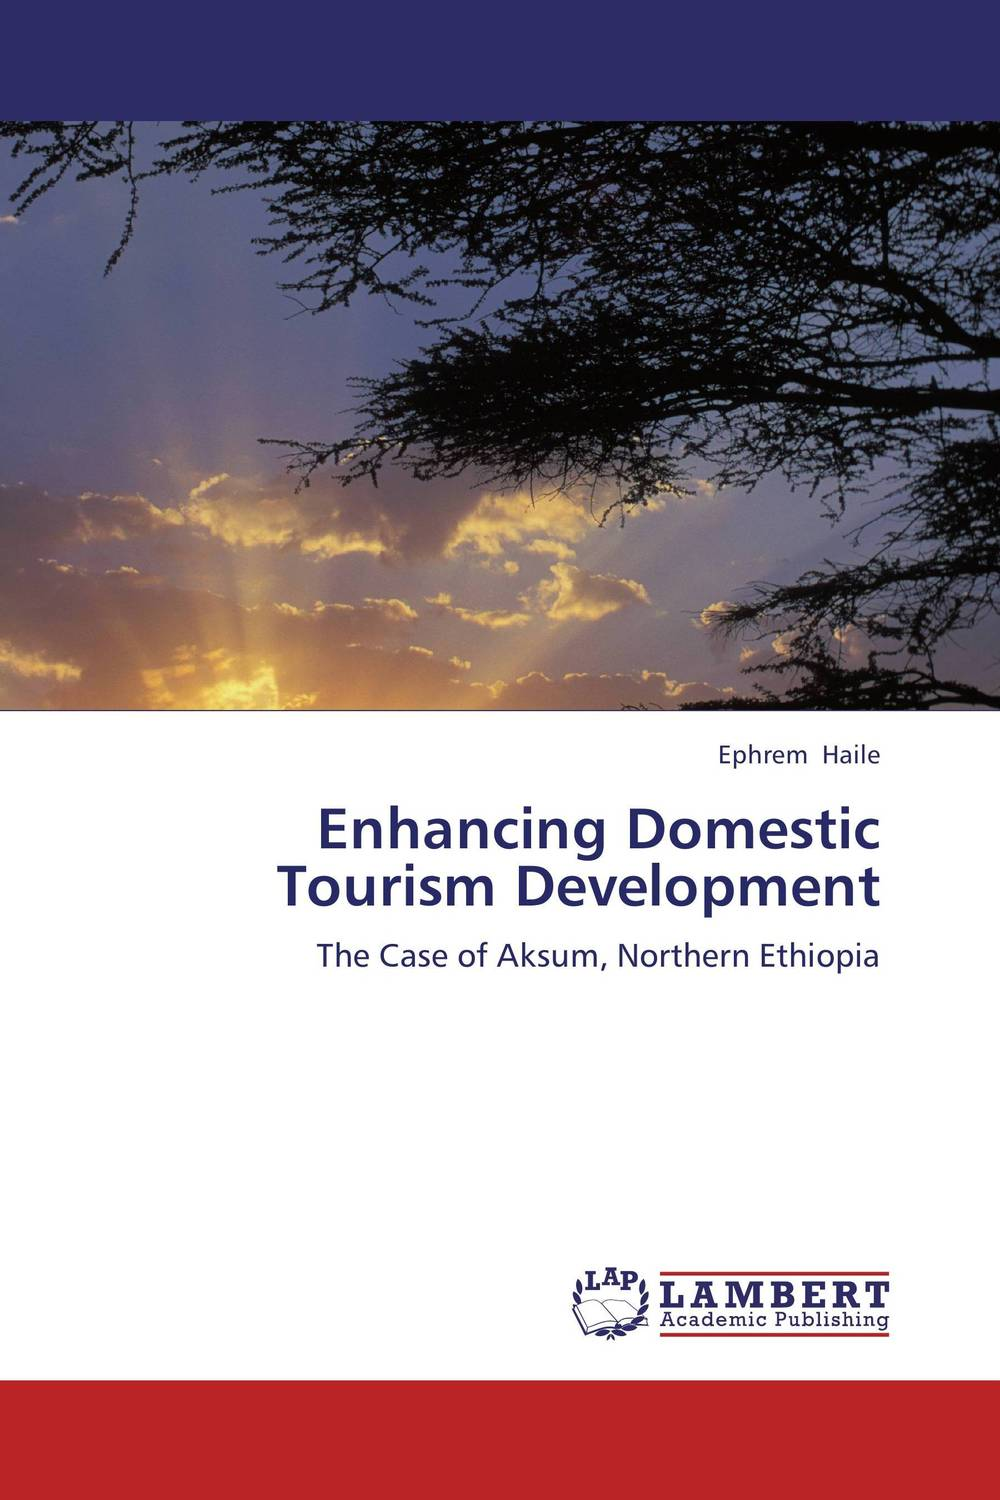 Enhancing Domestic Tourism Development father's role in enhancing children's development